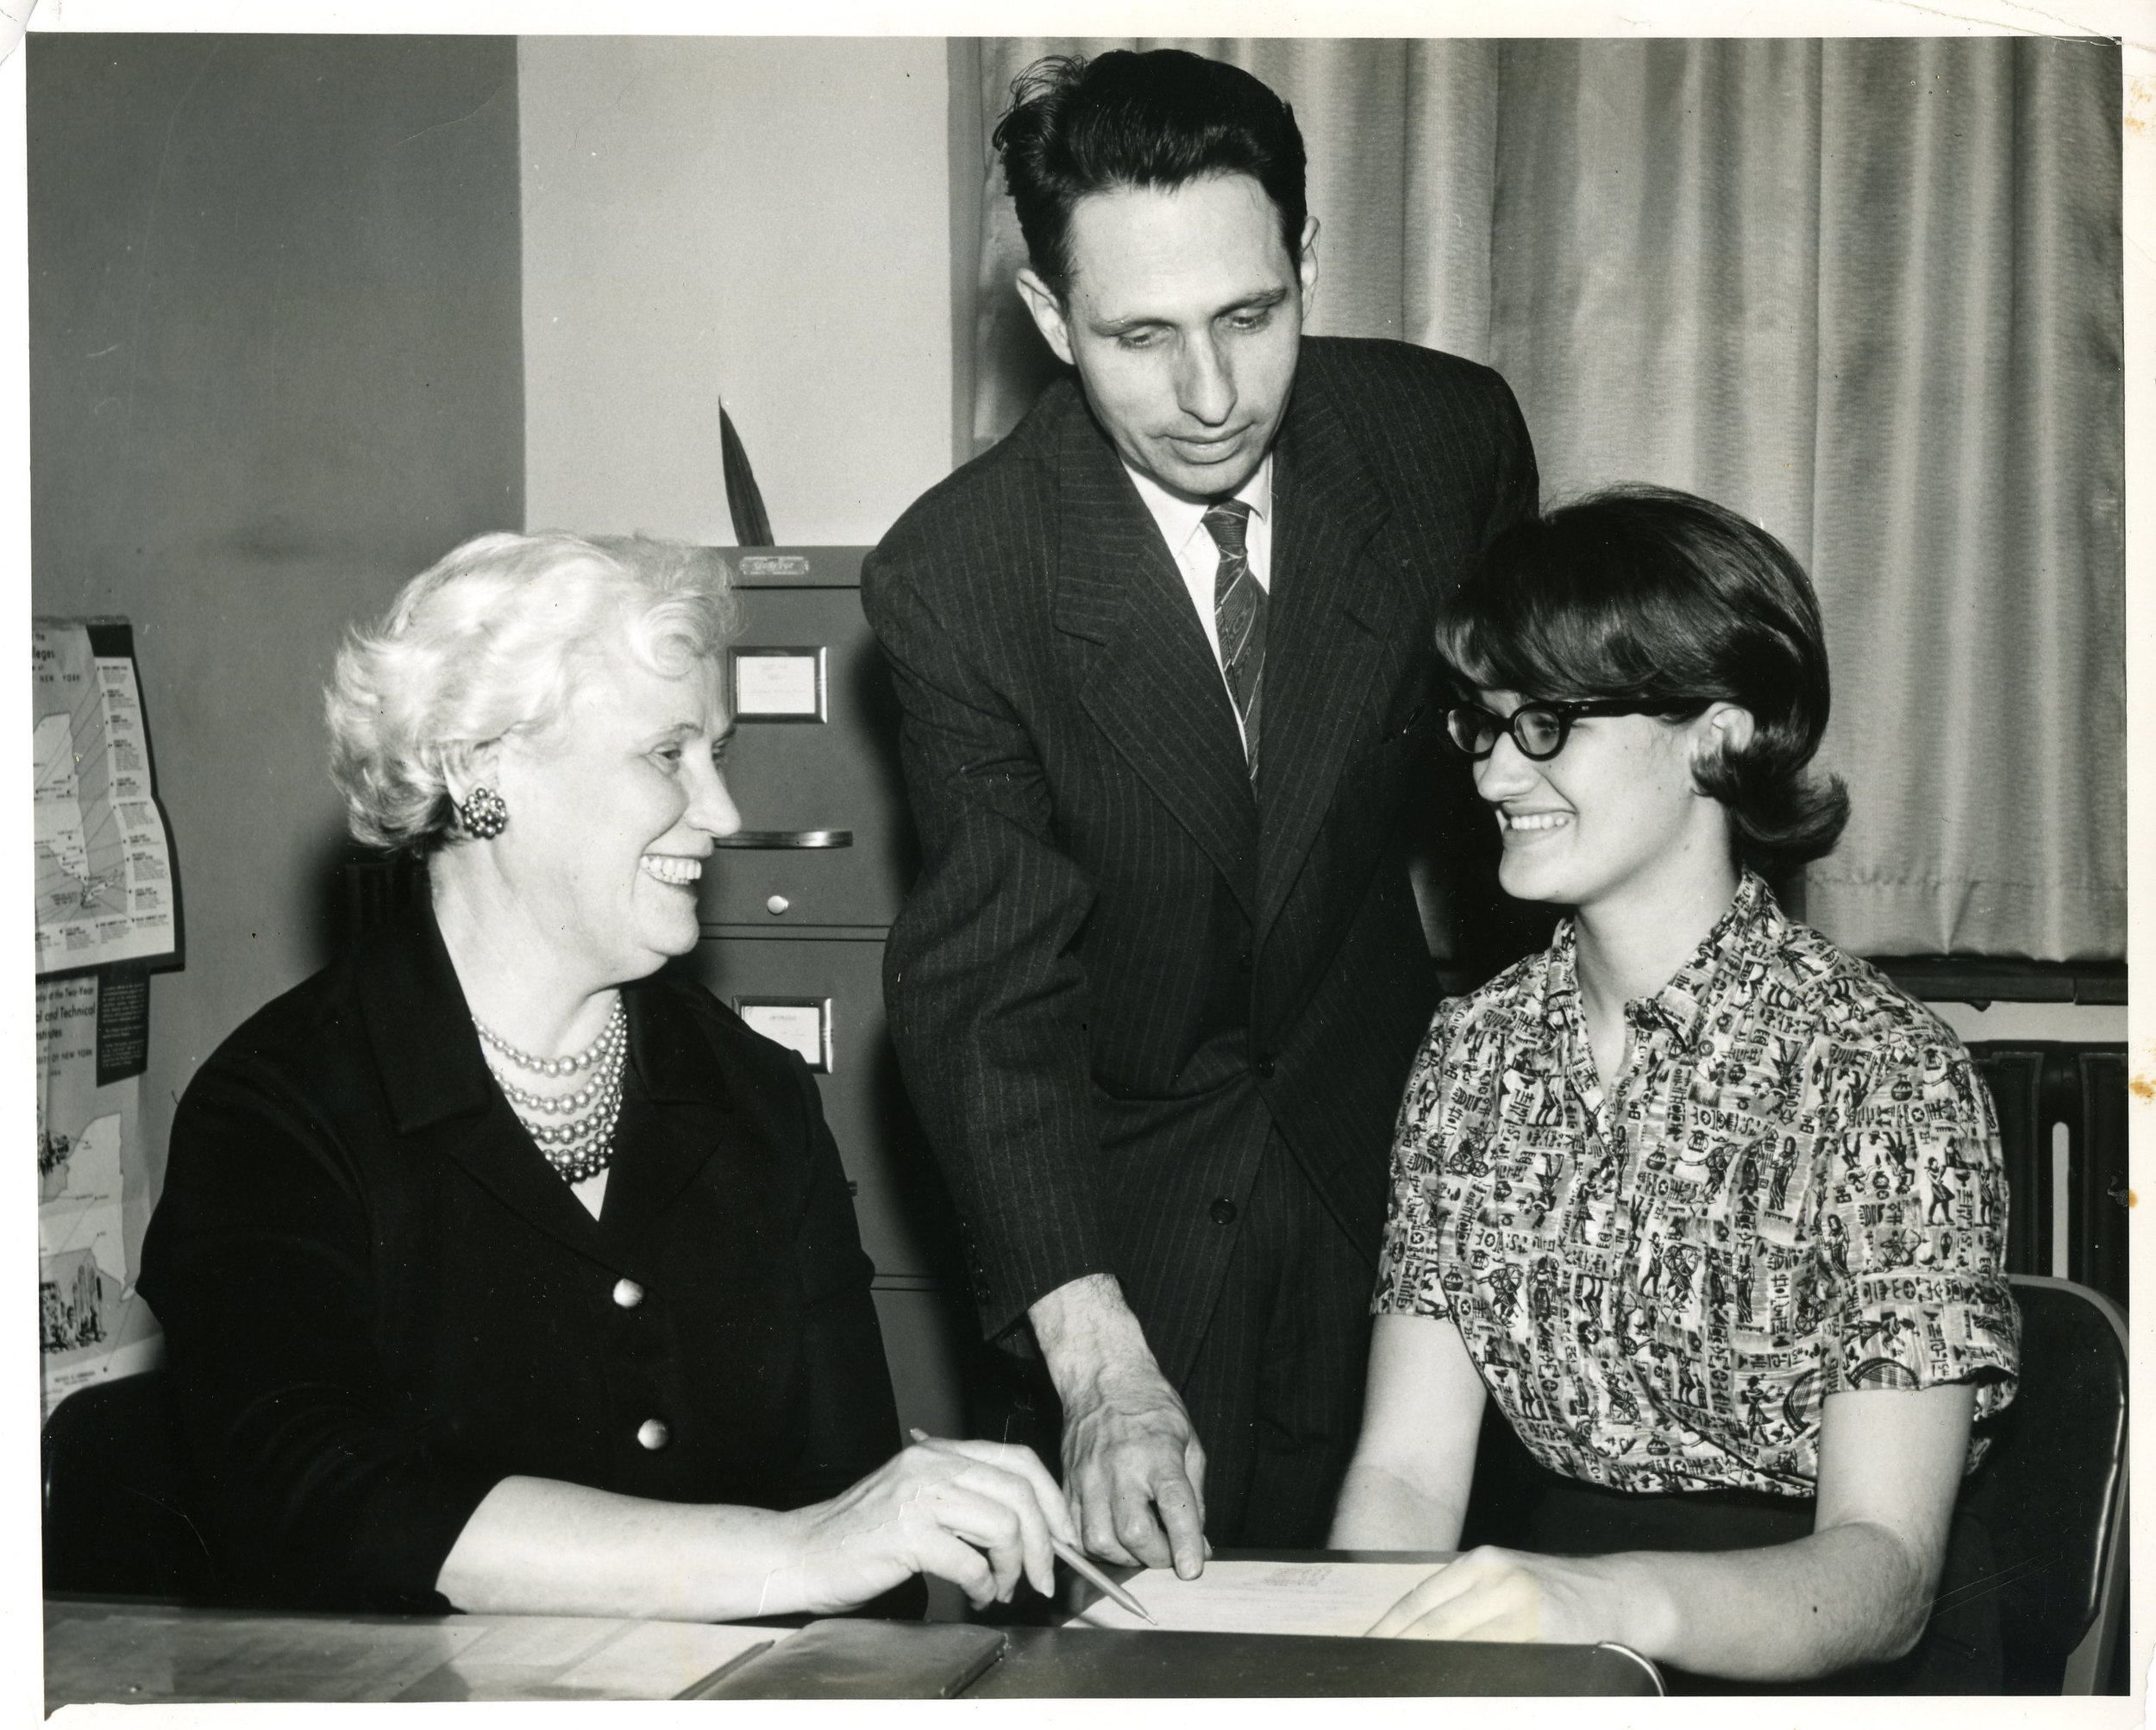 Me receiving the secretarial scholarship, Rome Free Academy, Rome, New York, 1964